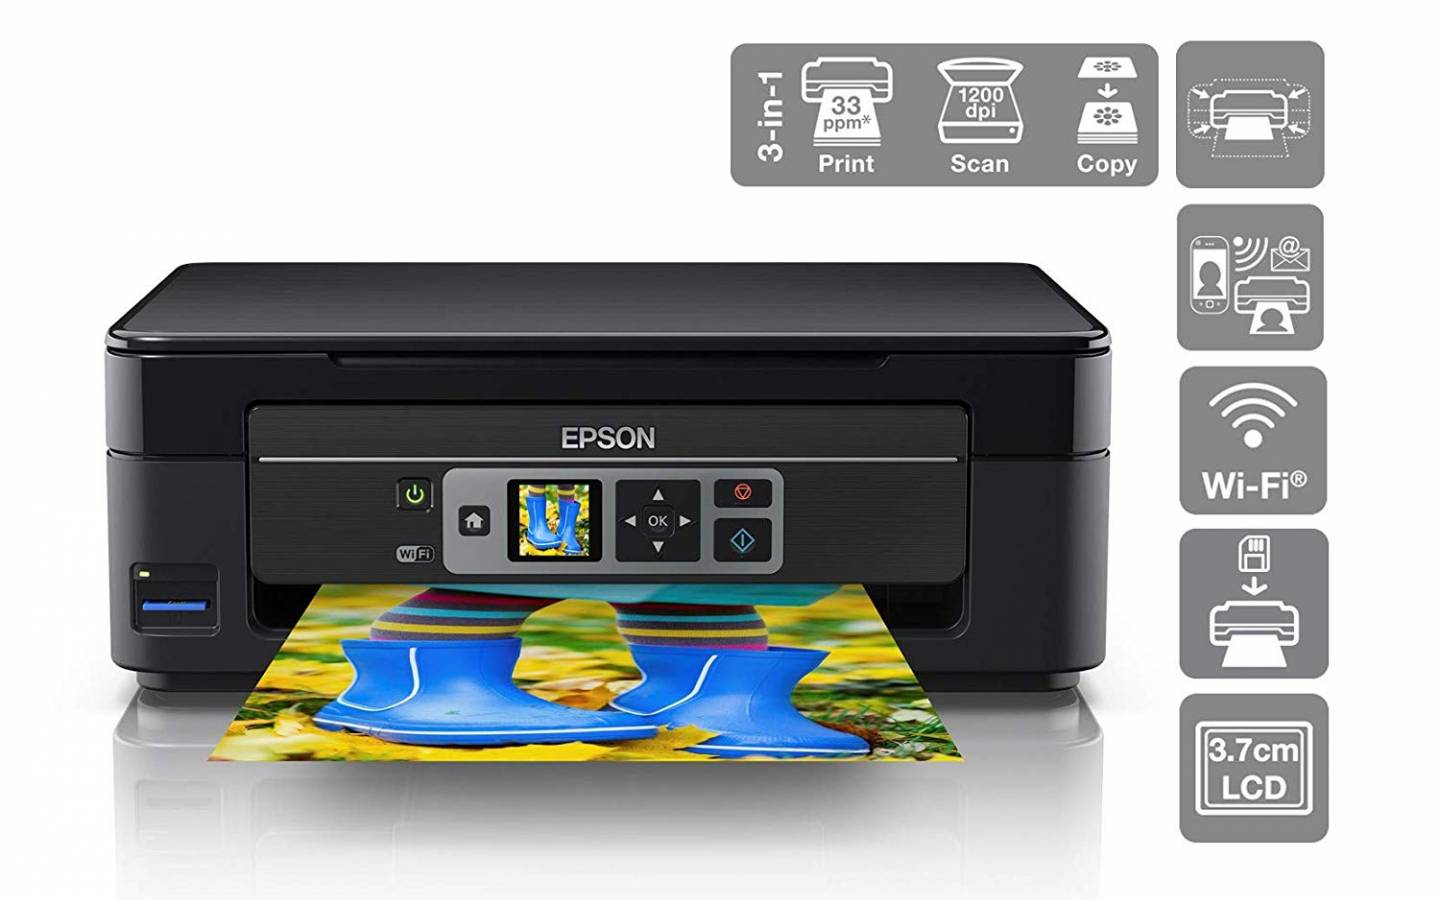 IMPRESORA EPSON MULTIFUNCION XP-352 WIFI